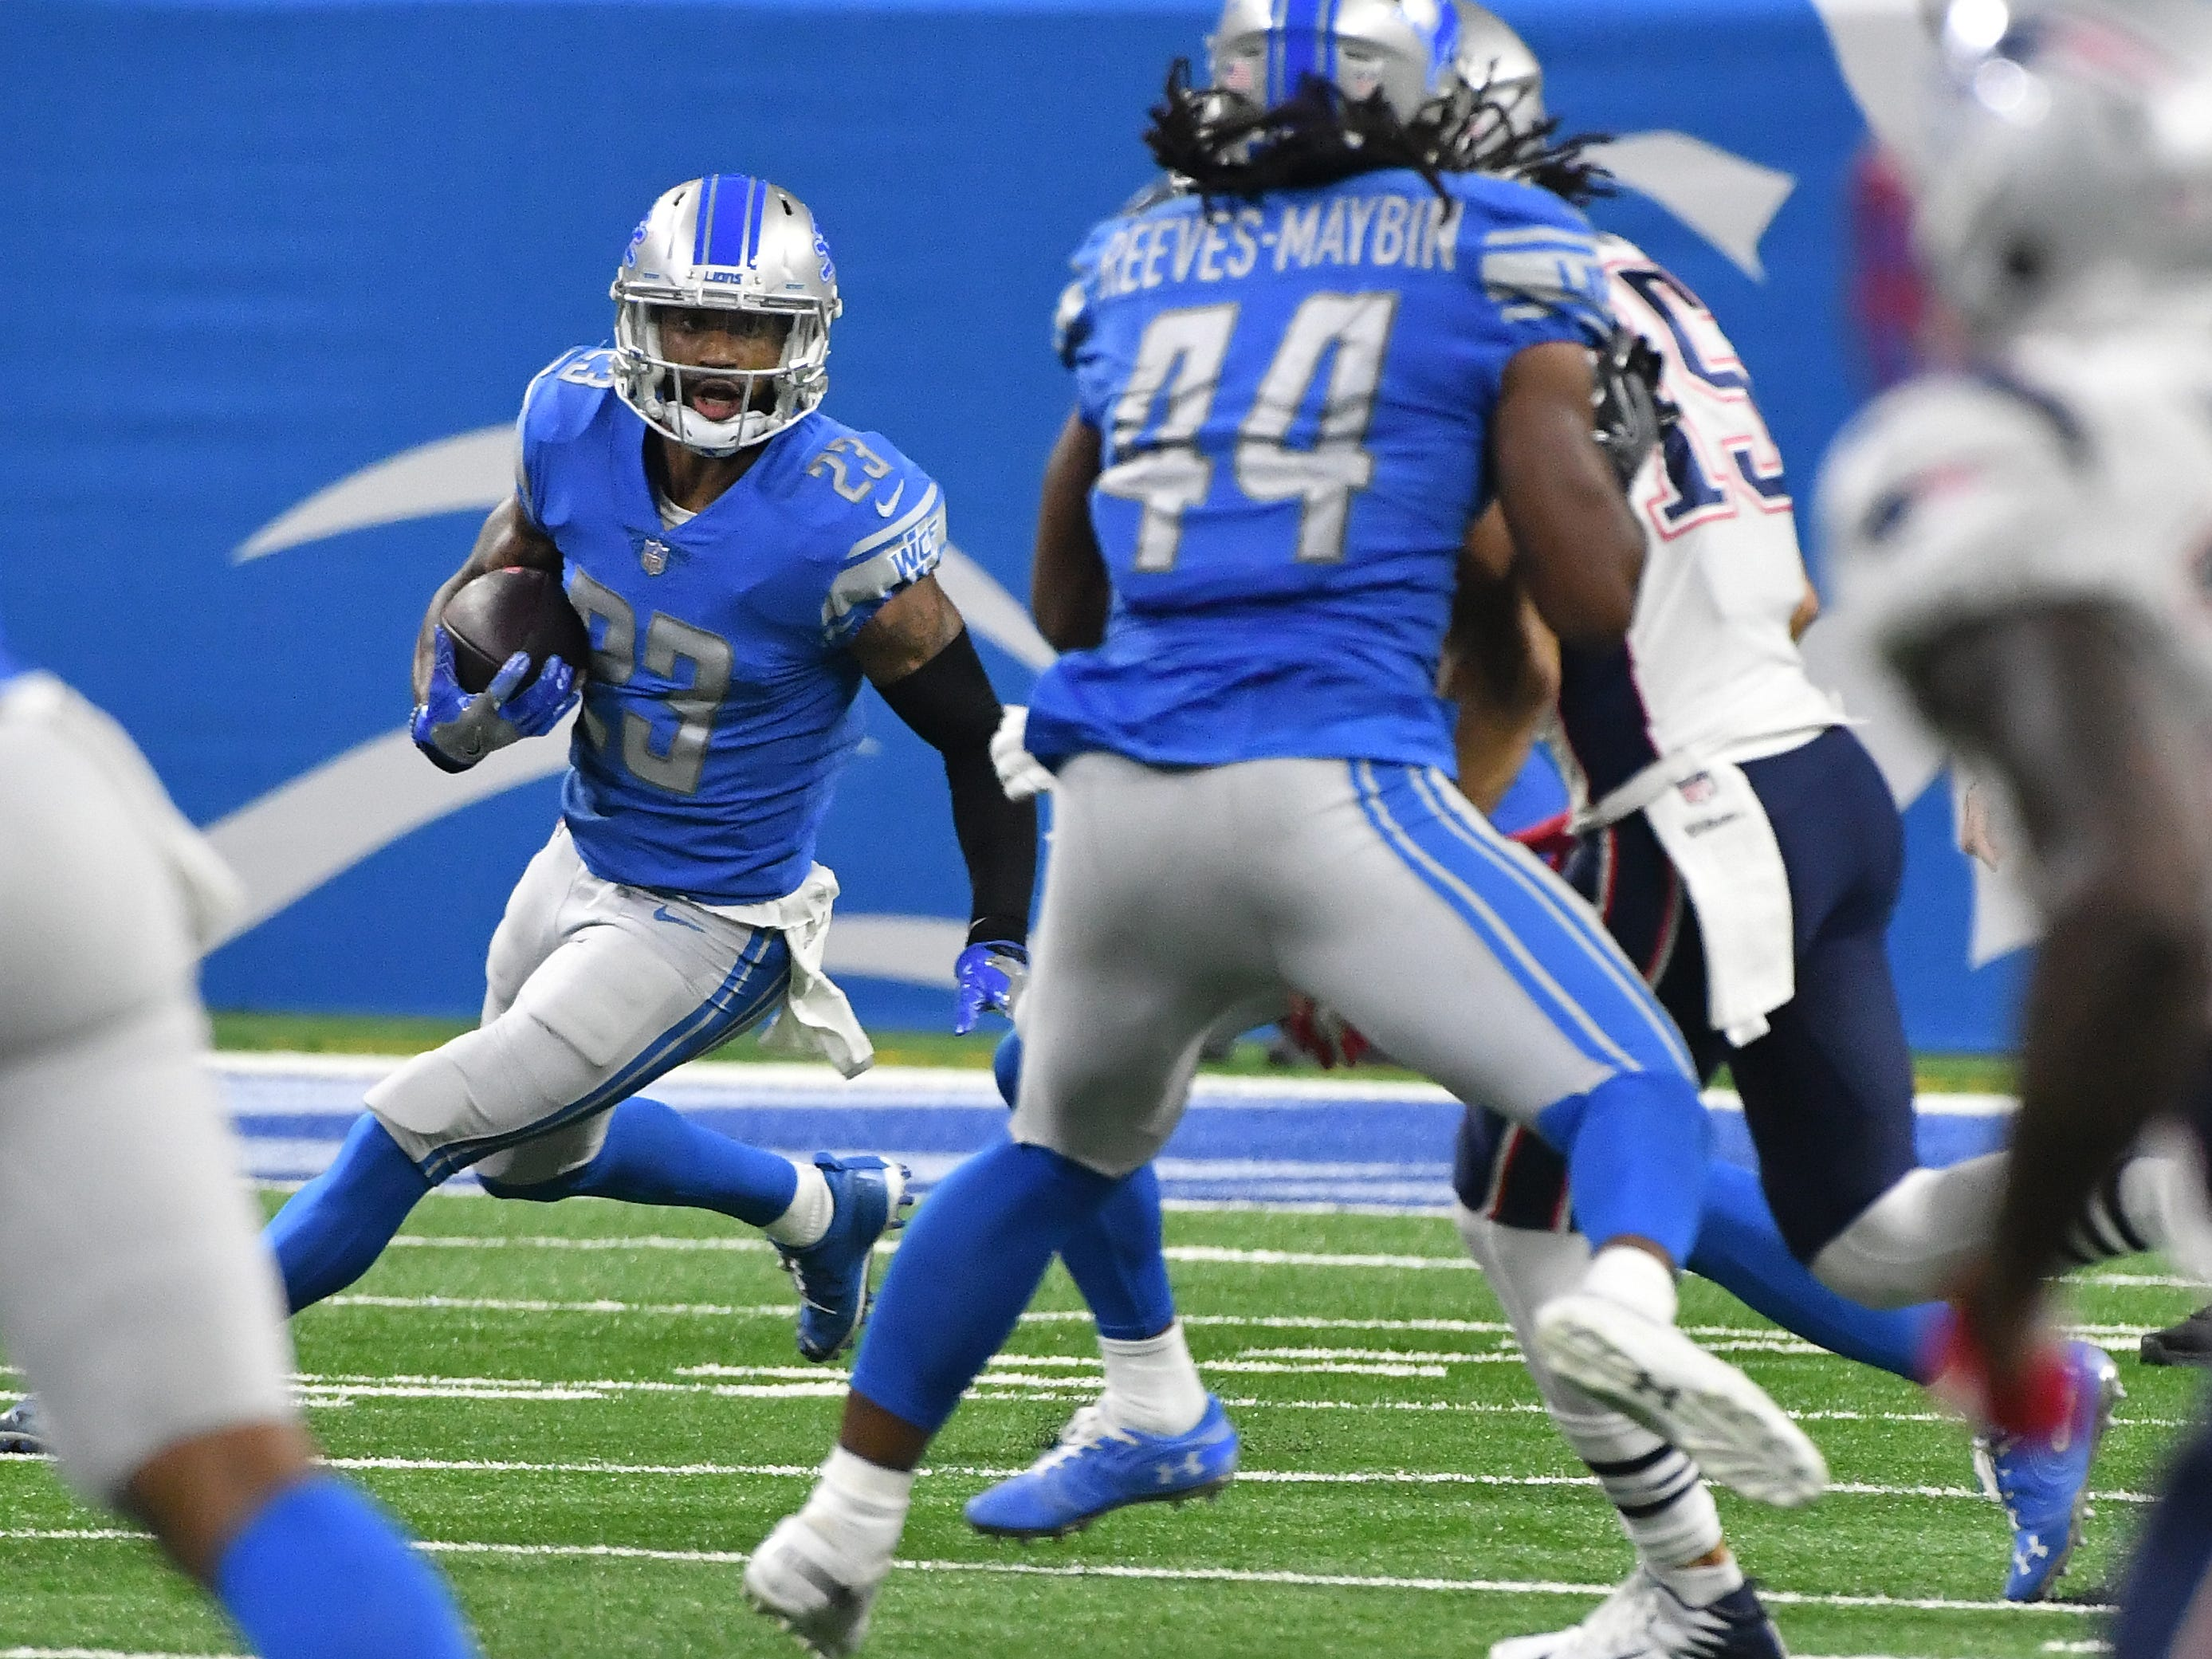 Lions corner back Darius Slay looks for running room after intercepting Patriots' Tom Brady pass in the 4th quarter.